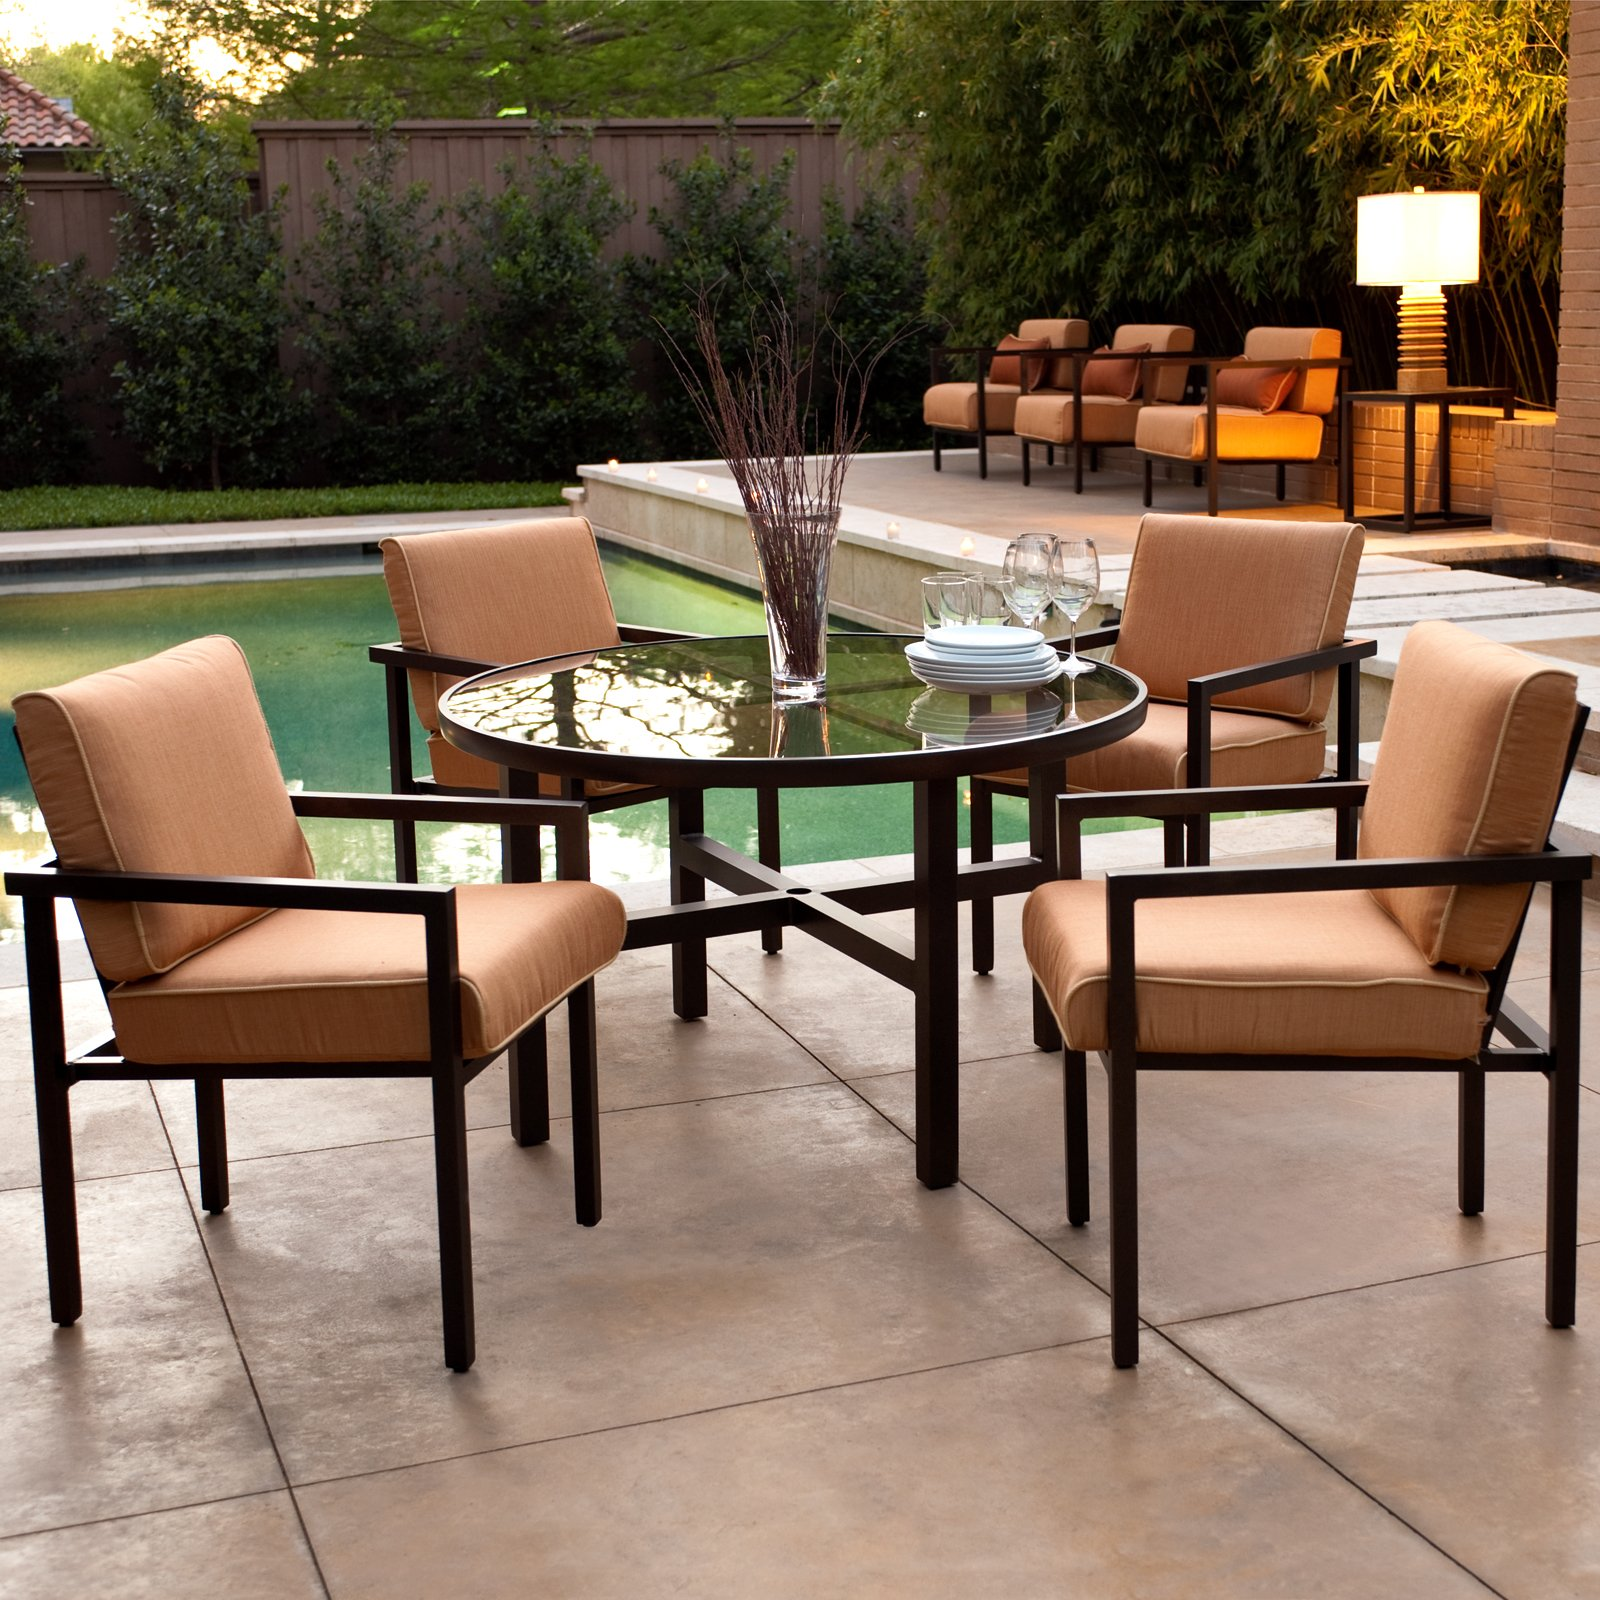 modern outdoor dining chair cream desk places to go for affordable furniture